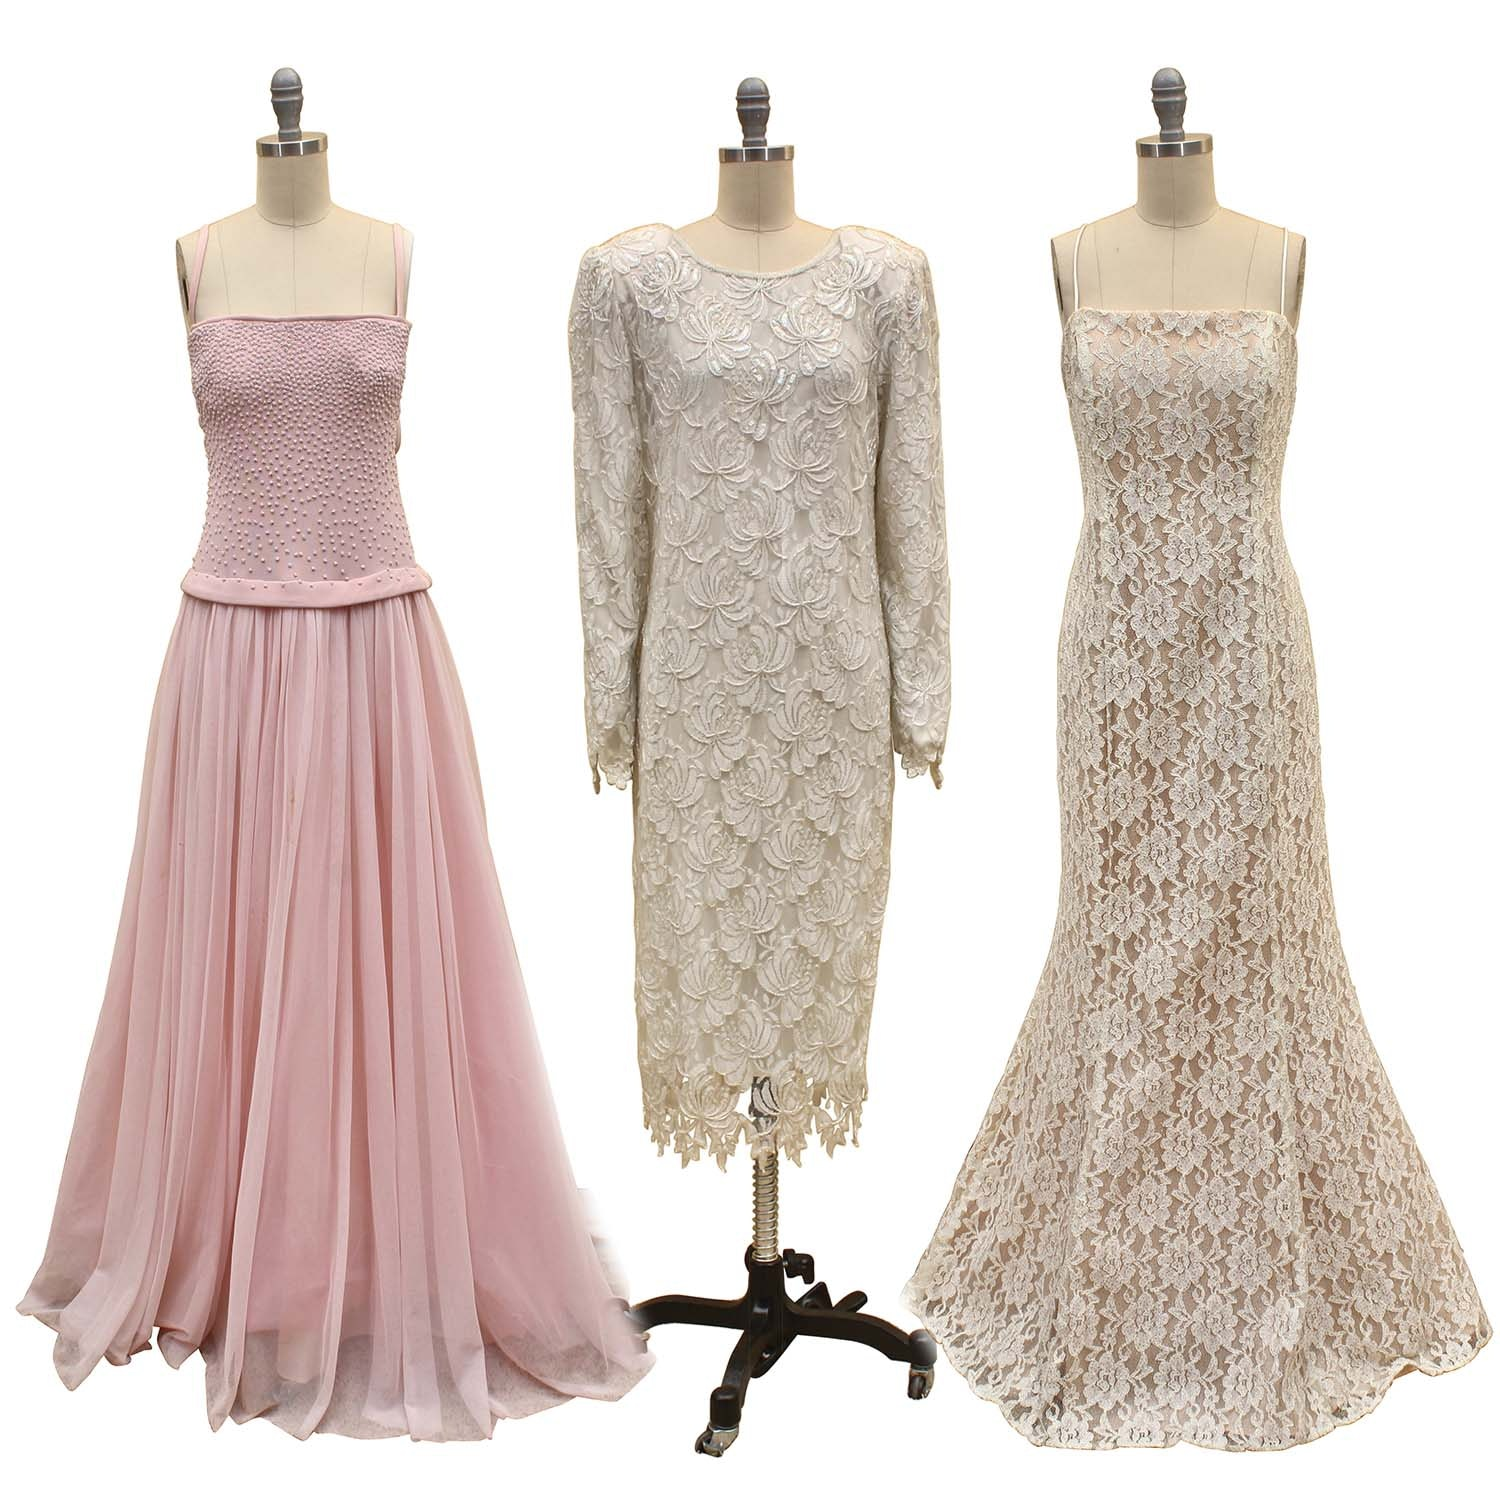 Women's Formal Dress and Gowns Including Tadashi